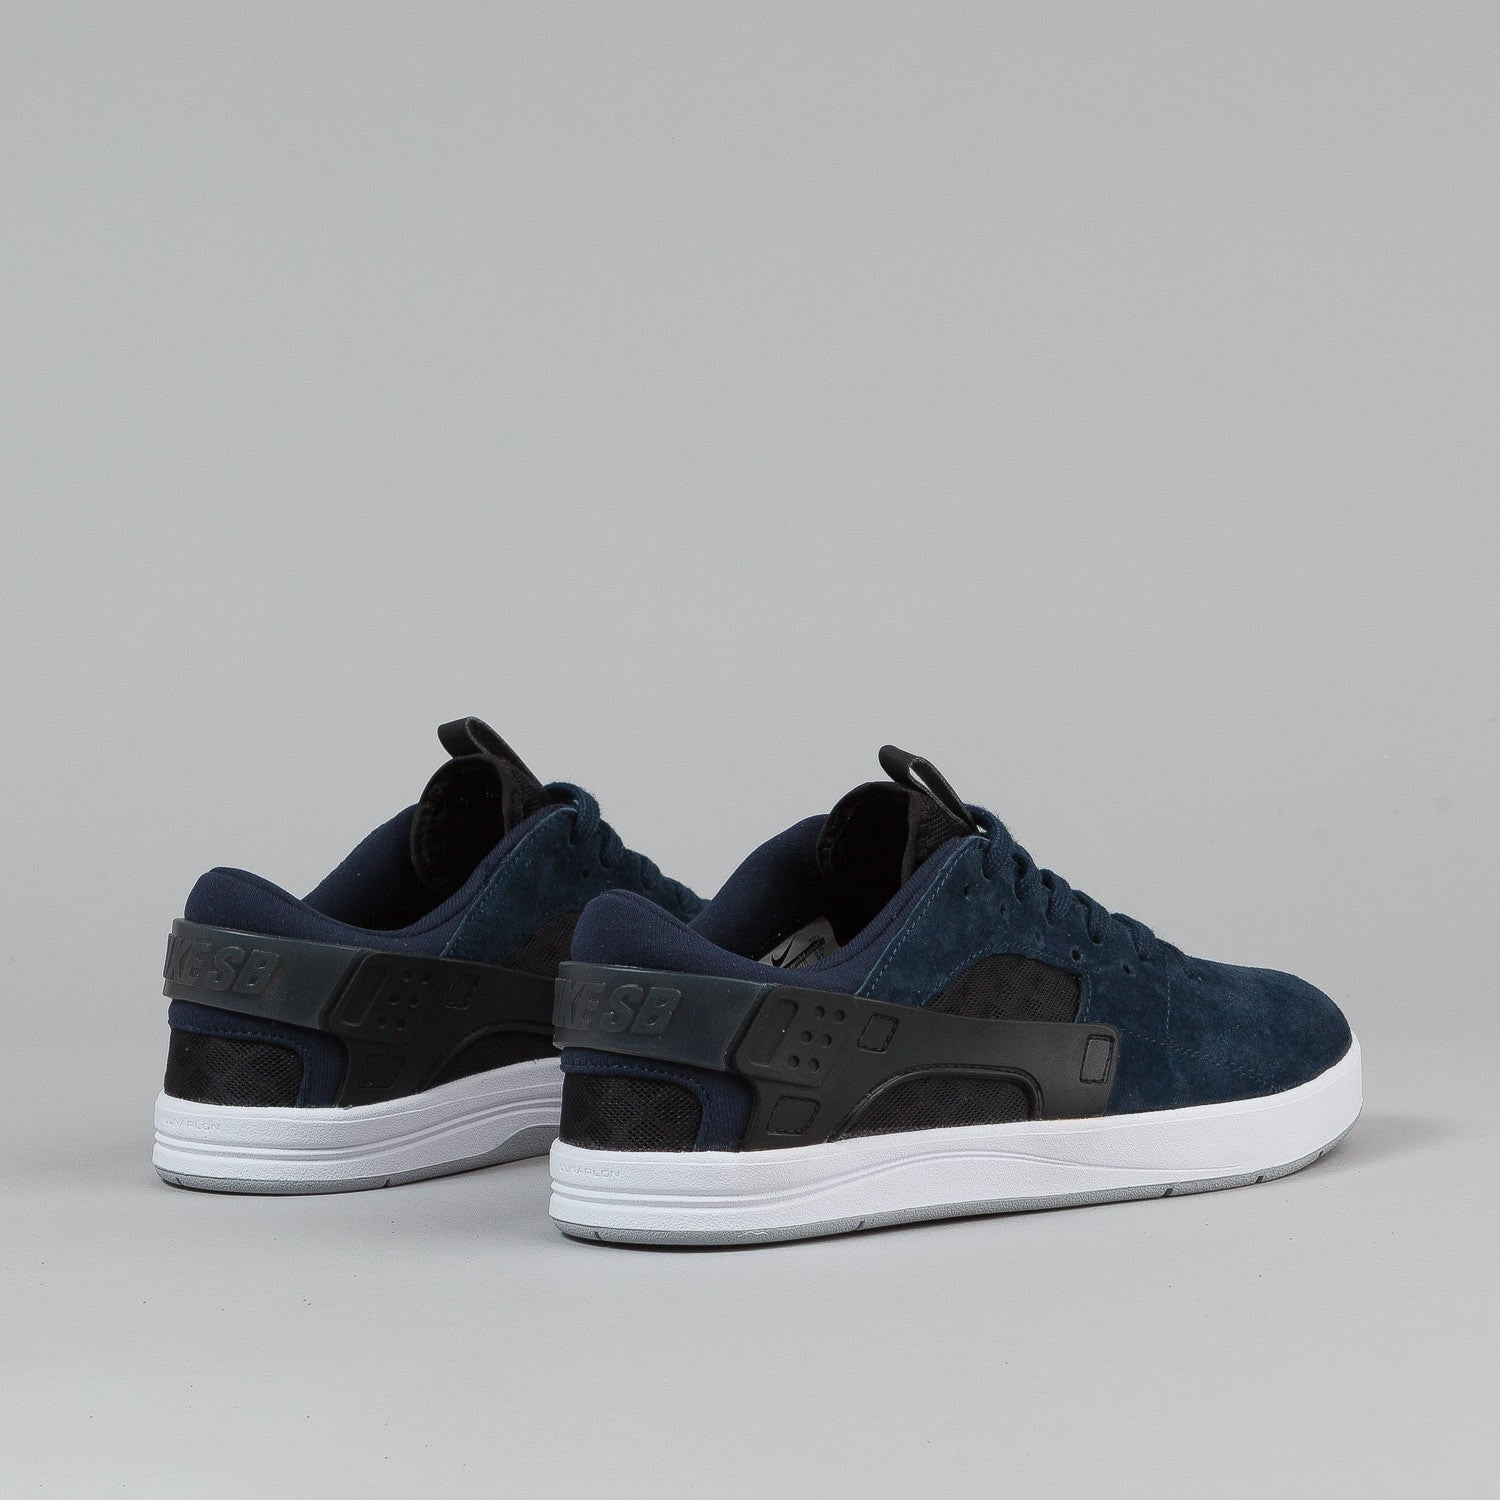 Nike SB Eric Koston Huarache Shoes - Dark Obsidian / White / Black / Wolf Grey